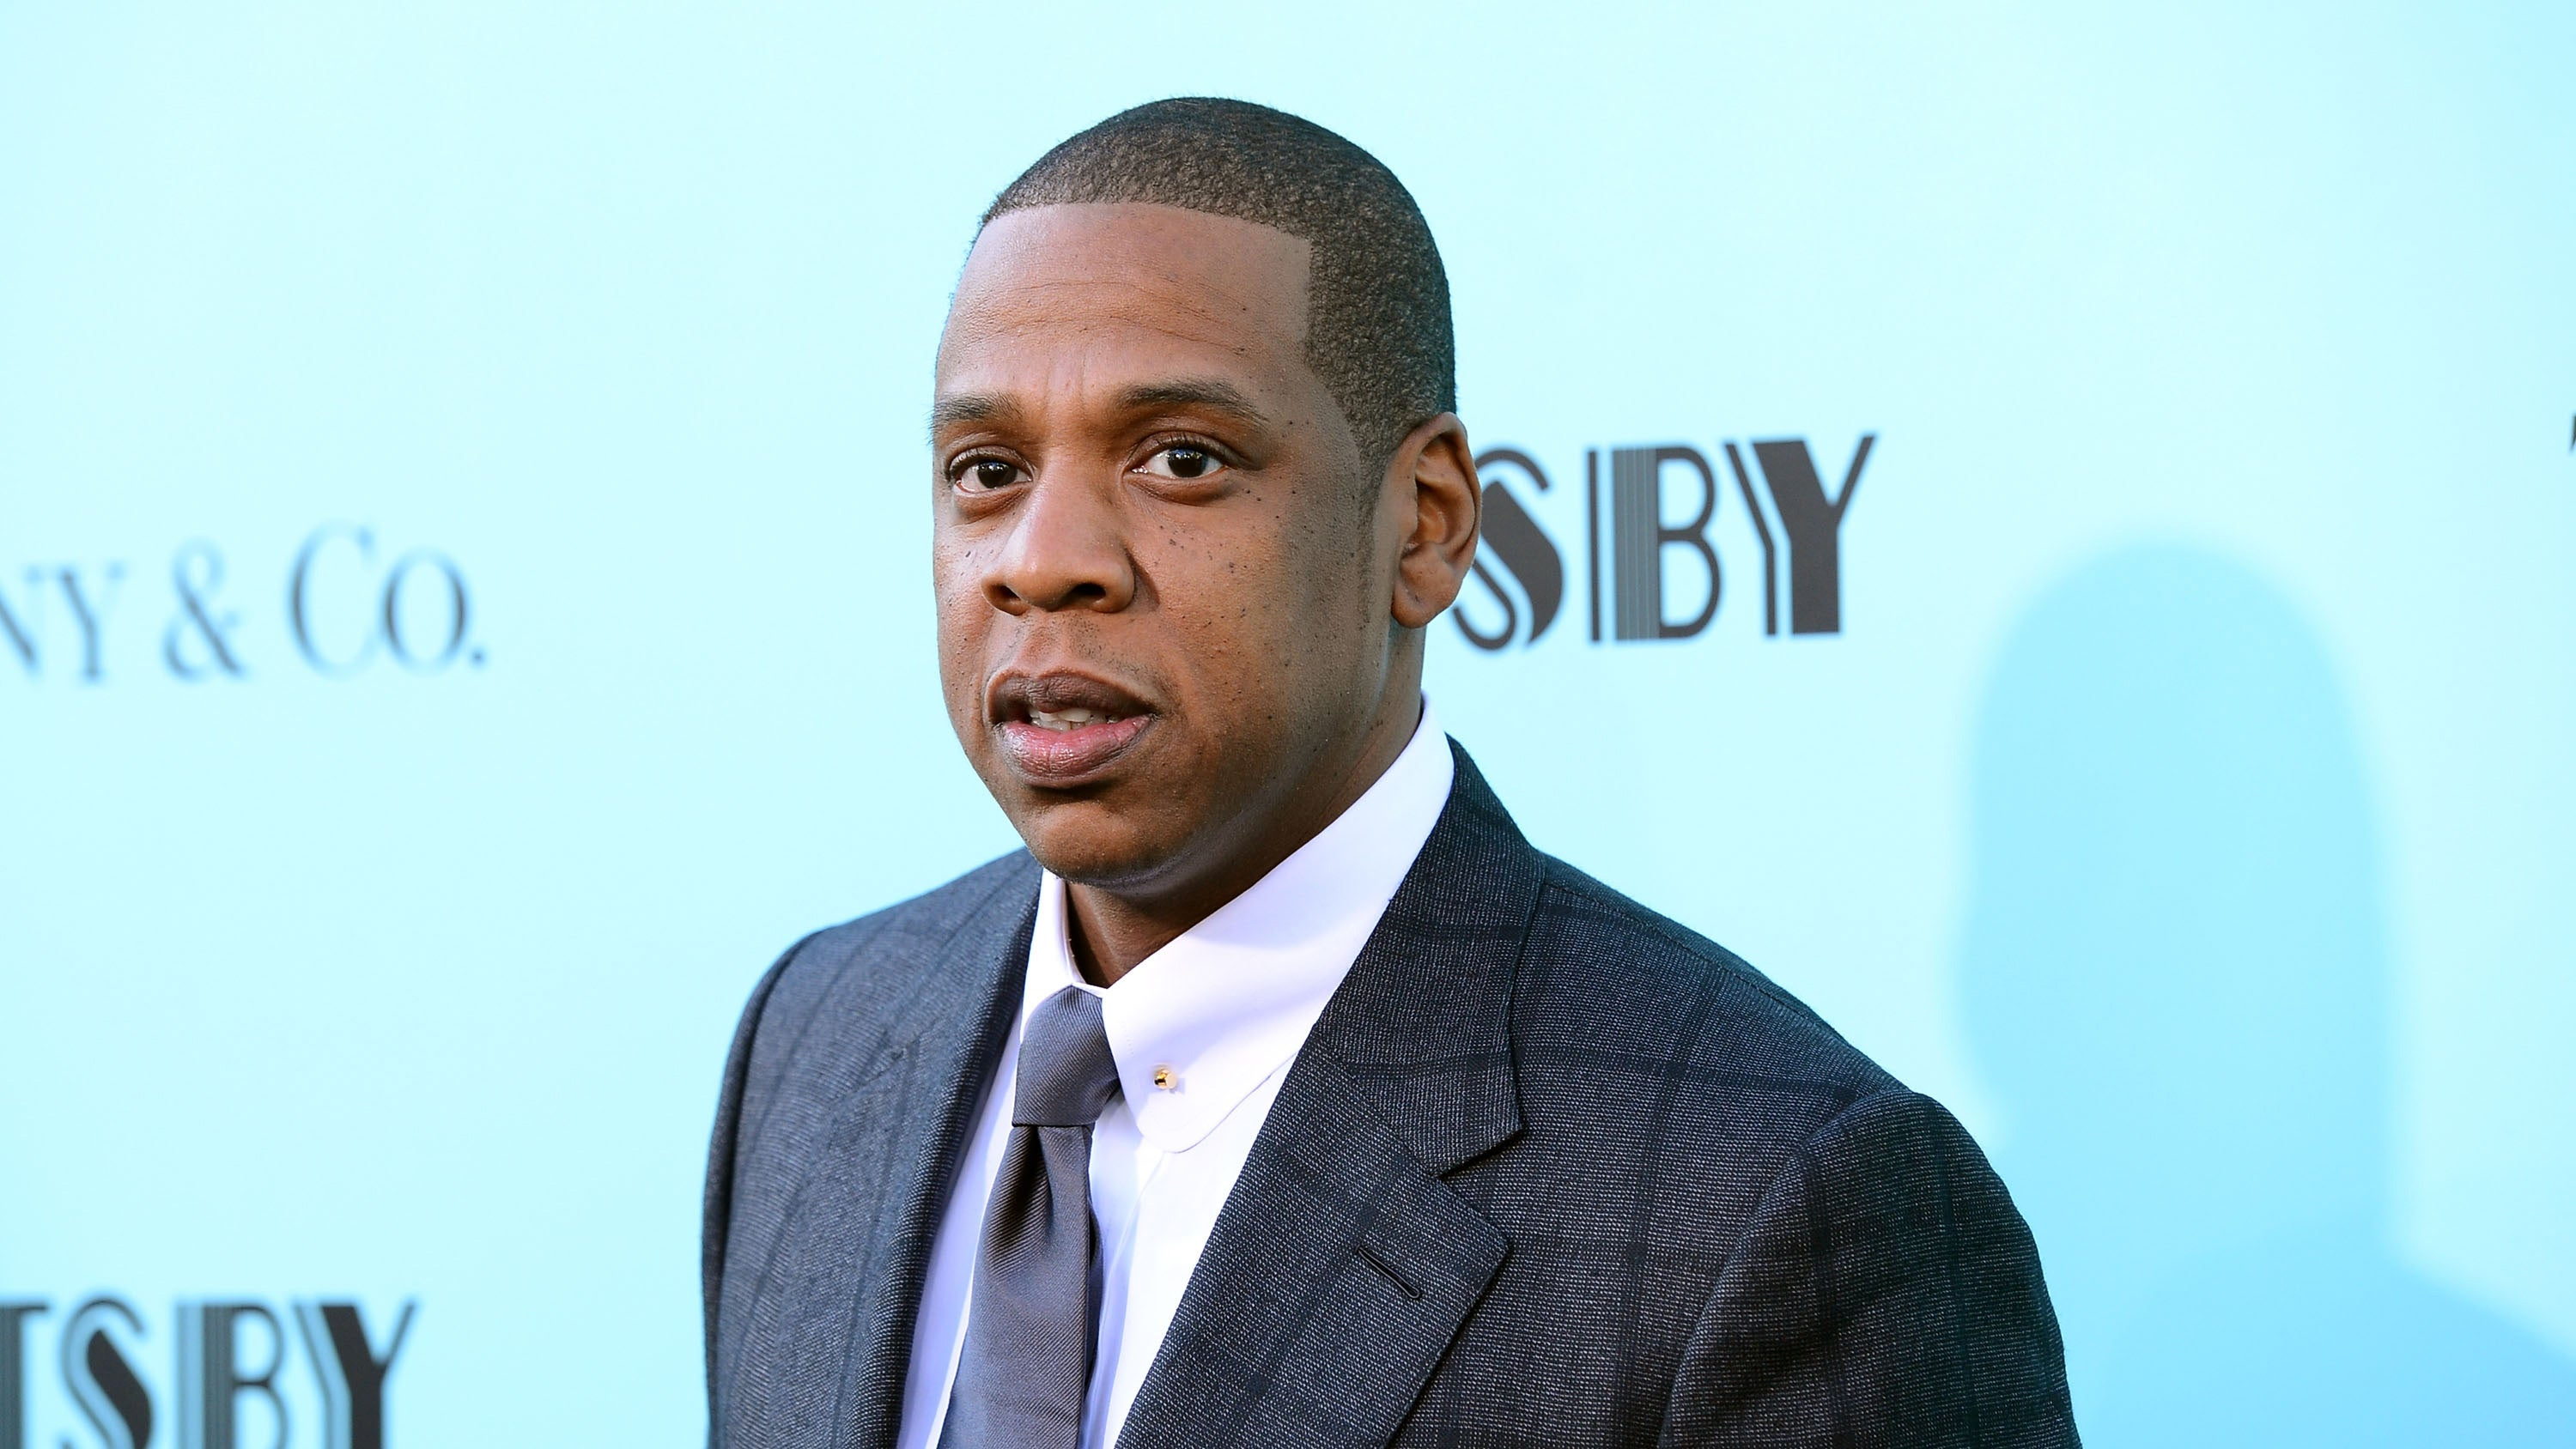 Jay Z Is Tech's Hot New Investment Whiz Kid